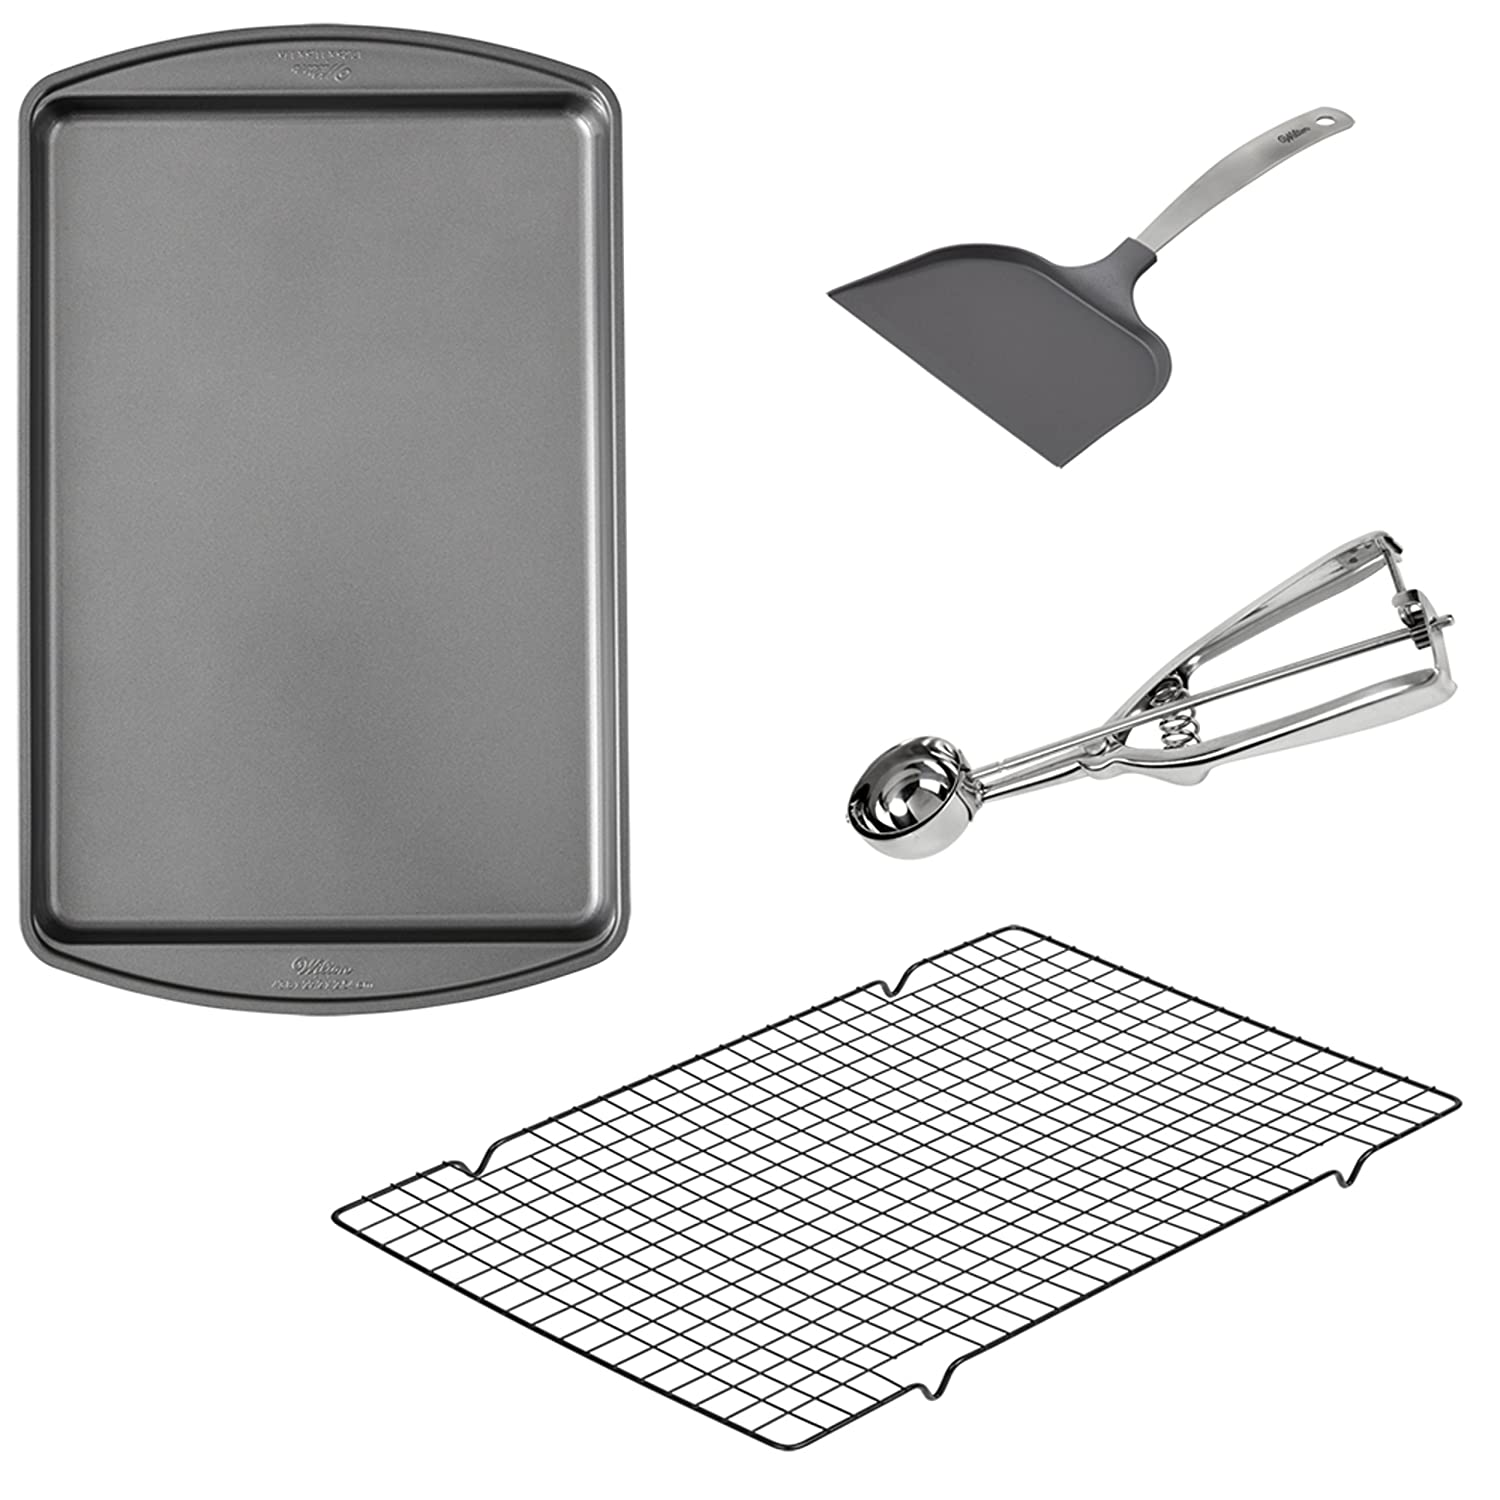 Wilton Cookie Baking Set 4-Piece -  17.25 x 11.5-Inch Non-Stick Cookie Sheet -  16 x 10-Inch Non-Stick Cooling Rack, Non-Stick Spatula, and Stainless Steel Cookie Scoop 2109-8810